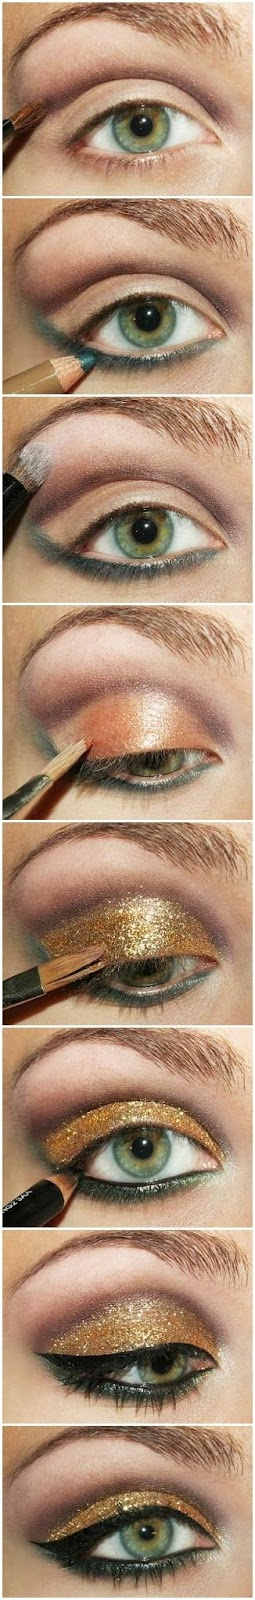 Gold eye shadow, perfect for Christmas or New Year's Eve event